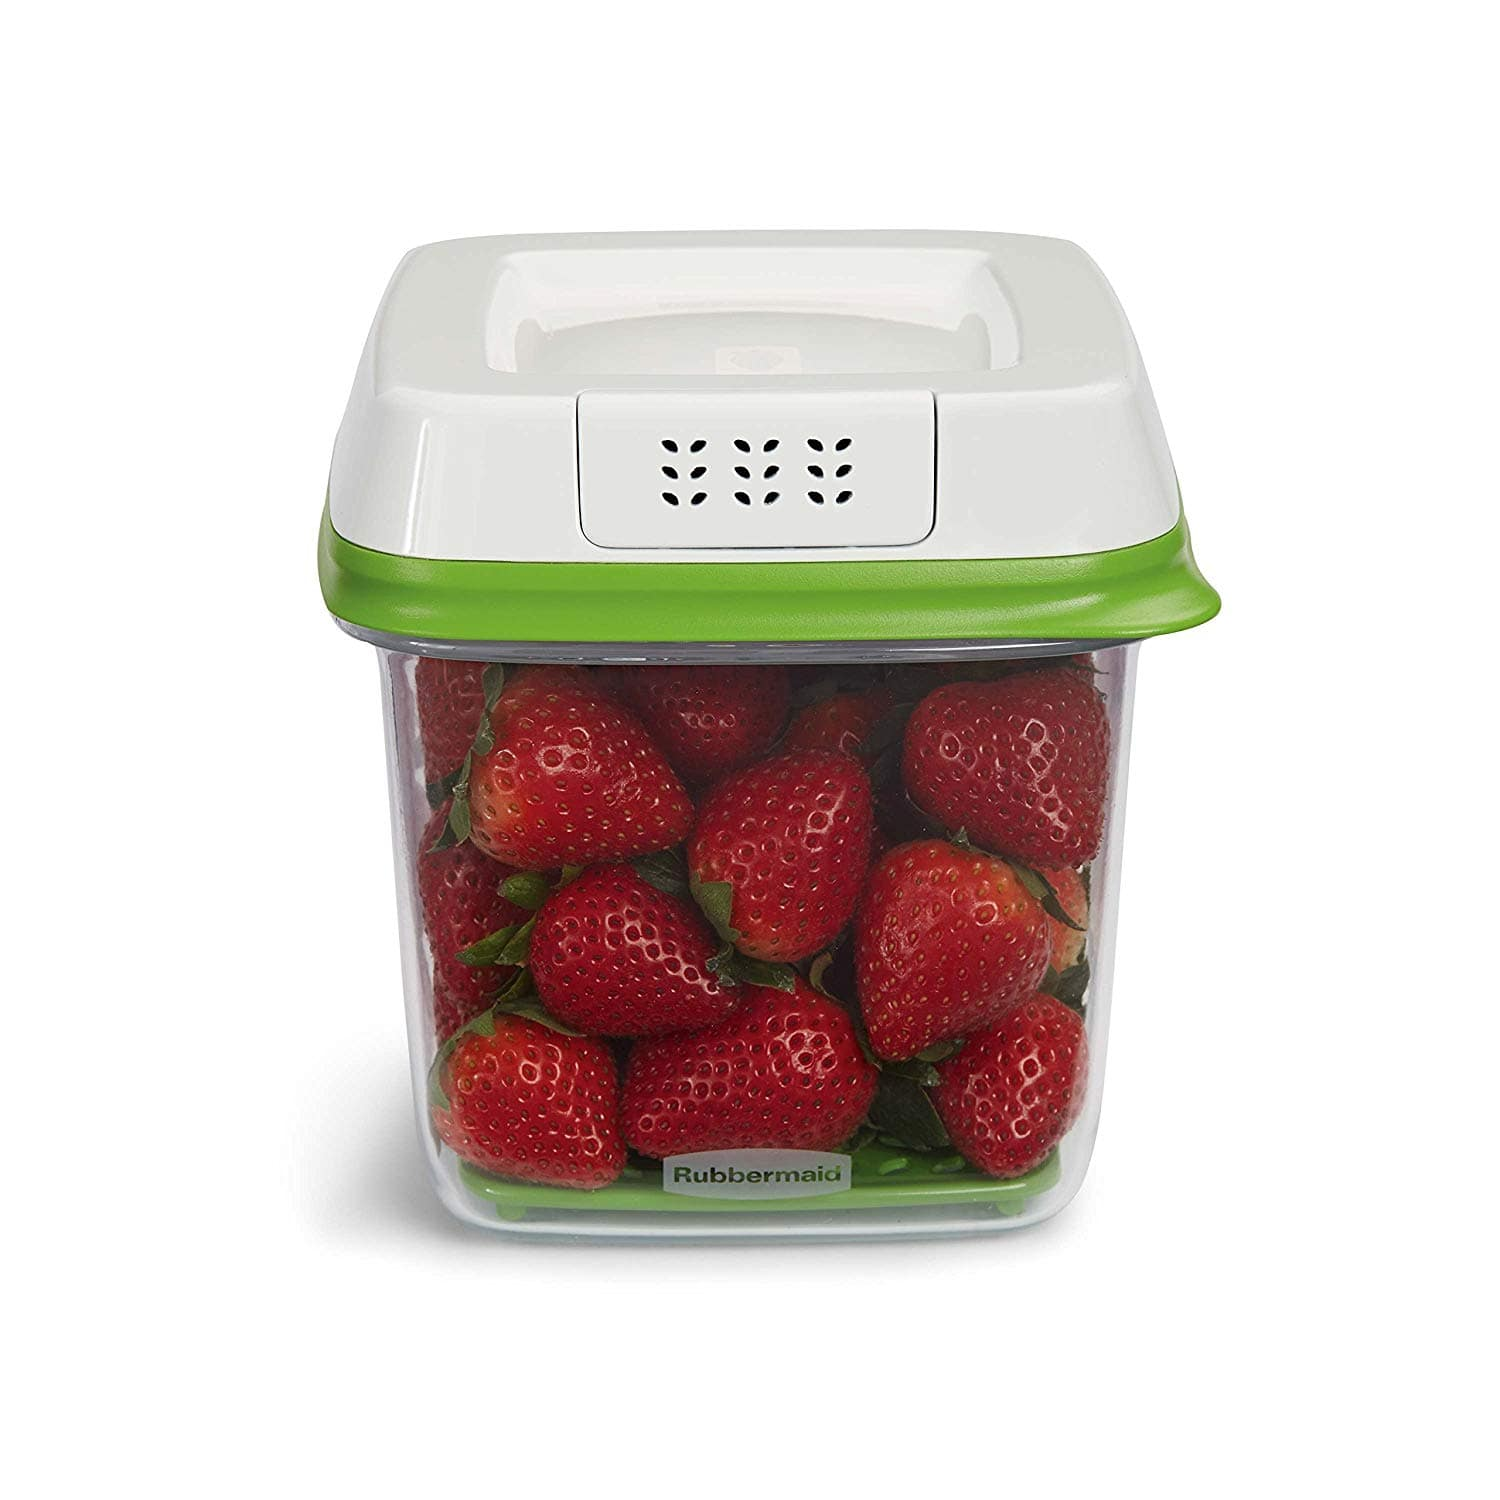 Rubbermaid FreshWorks Produce Saver Food Storage Container, Medium, 6.3 Cup $6.25 Amazon